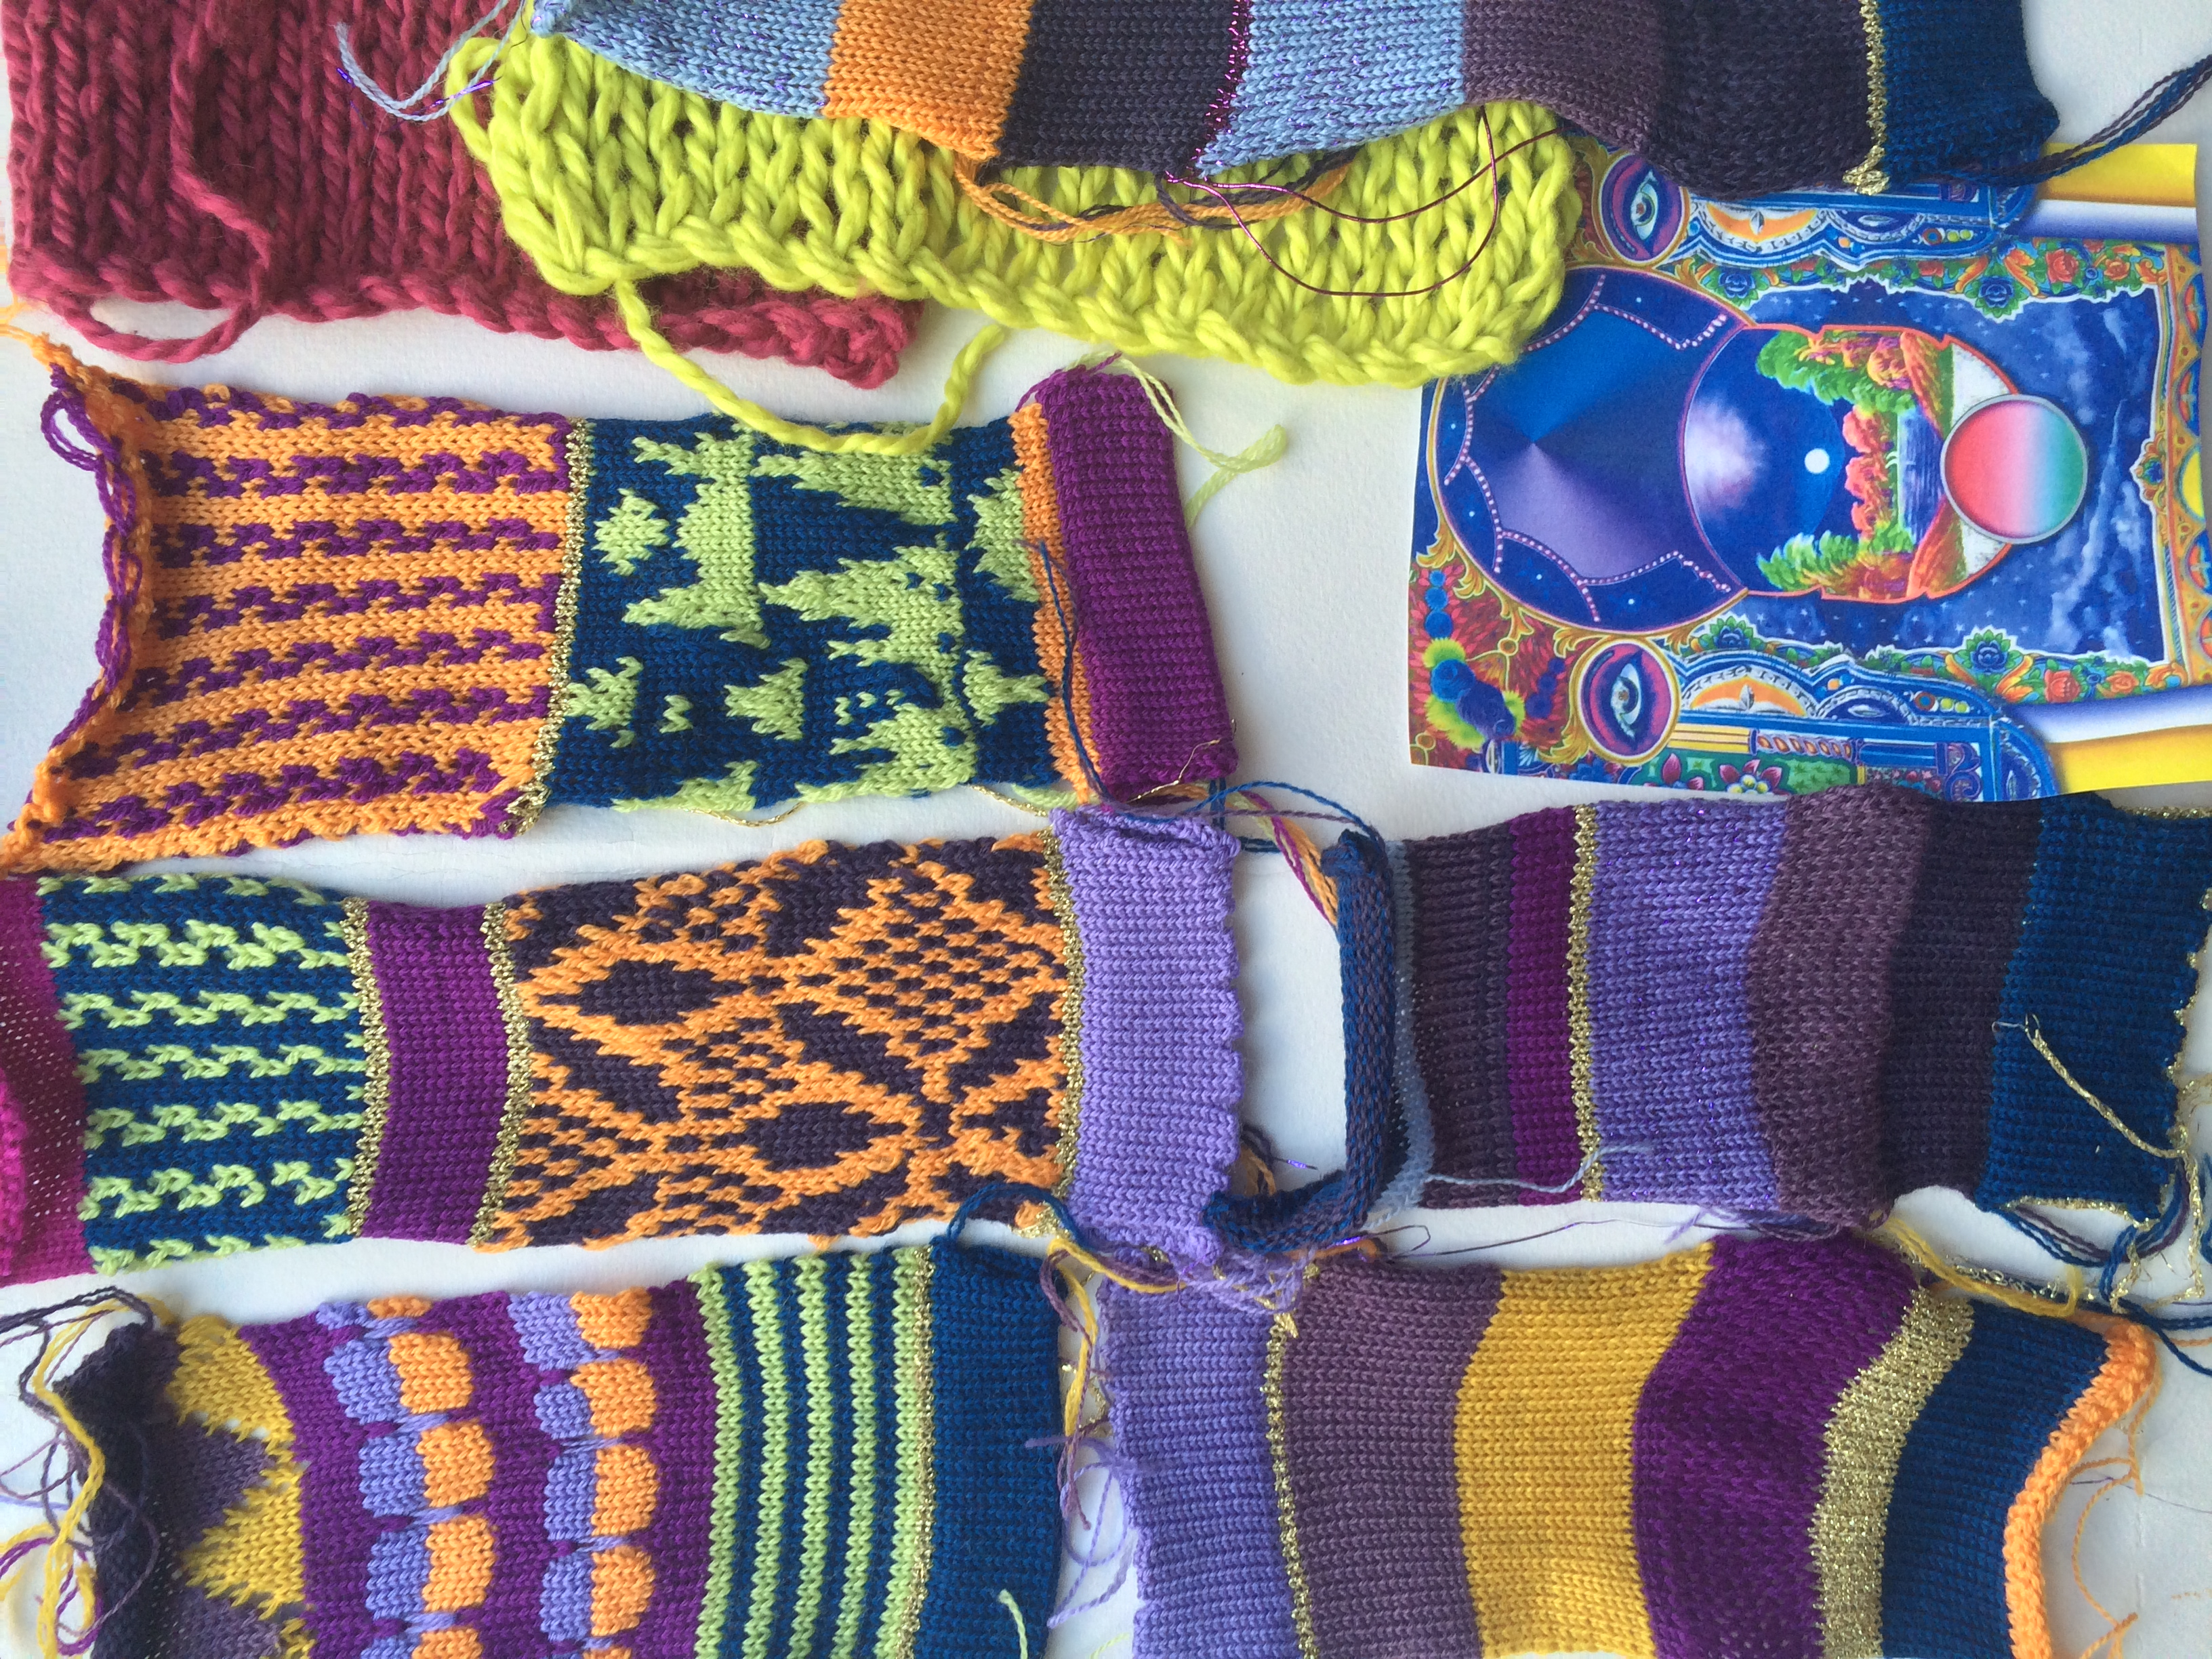 I knitted swatches based on the reference image (bottom right) before knitting the garments.